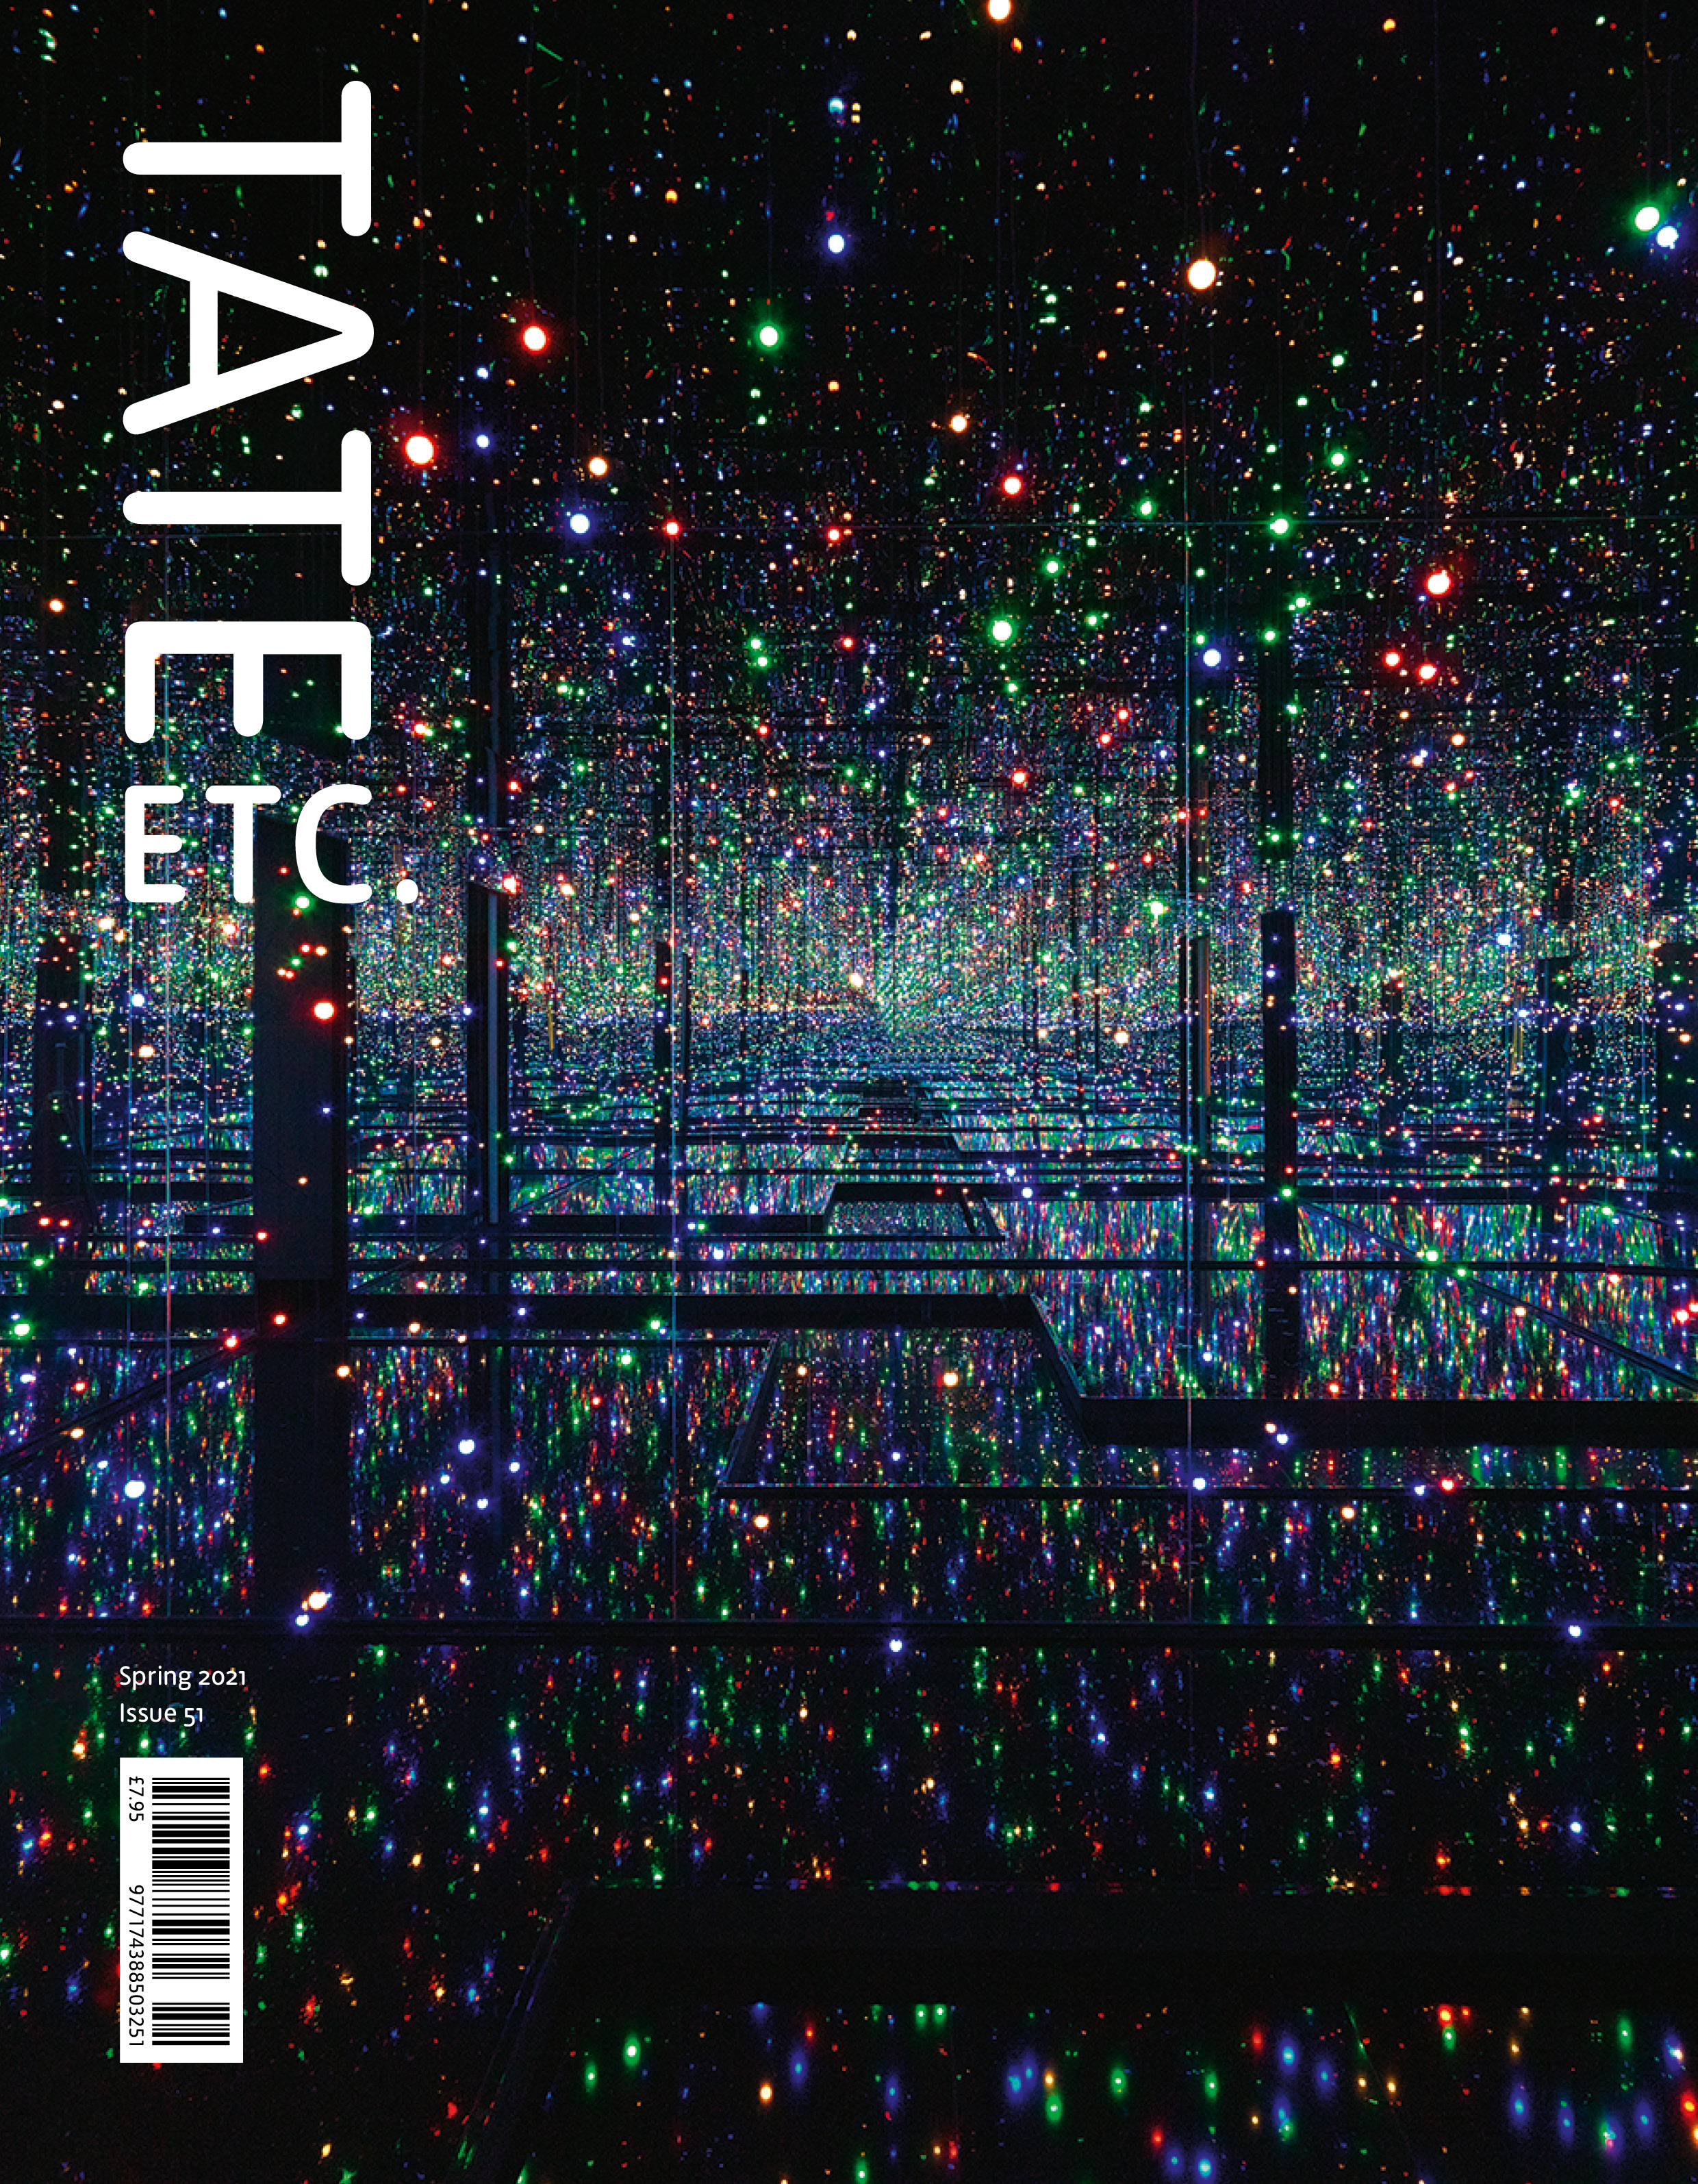 Front cover of Issue 51, 15 January